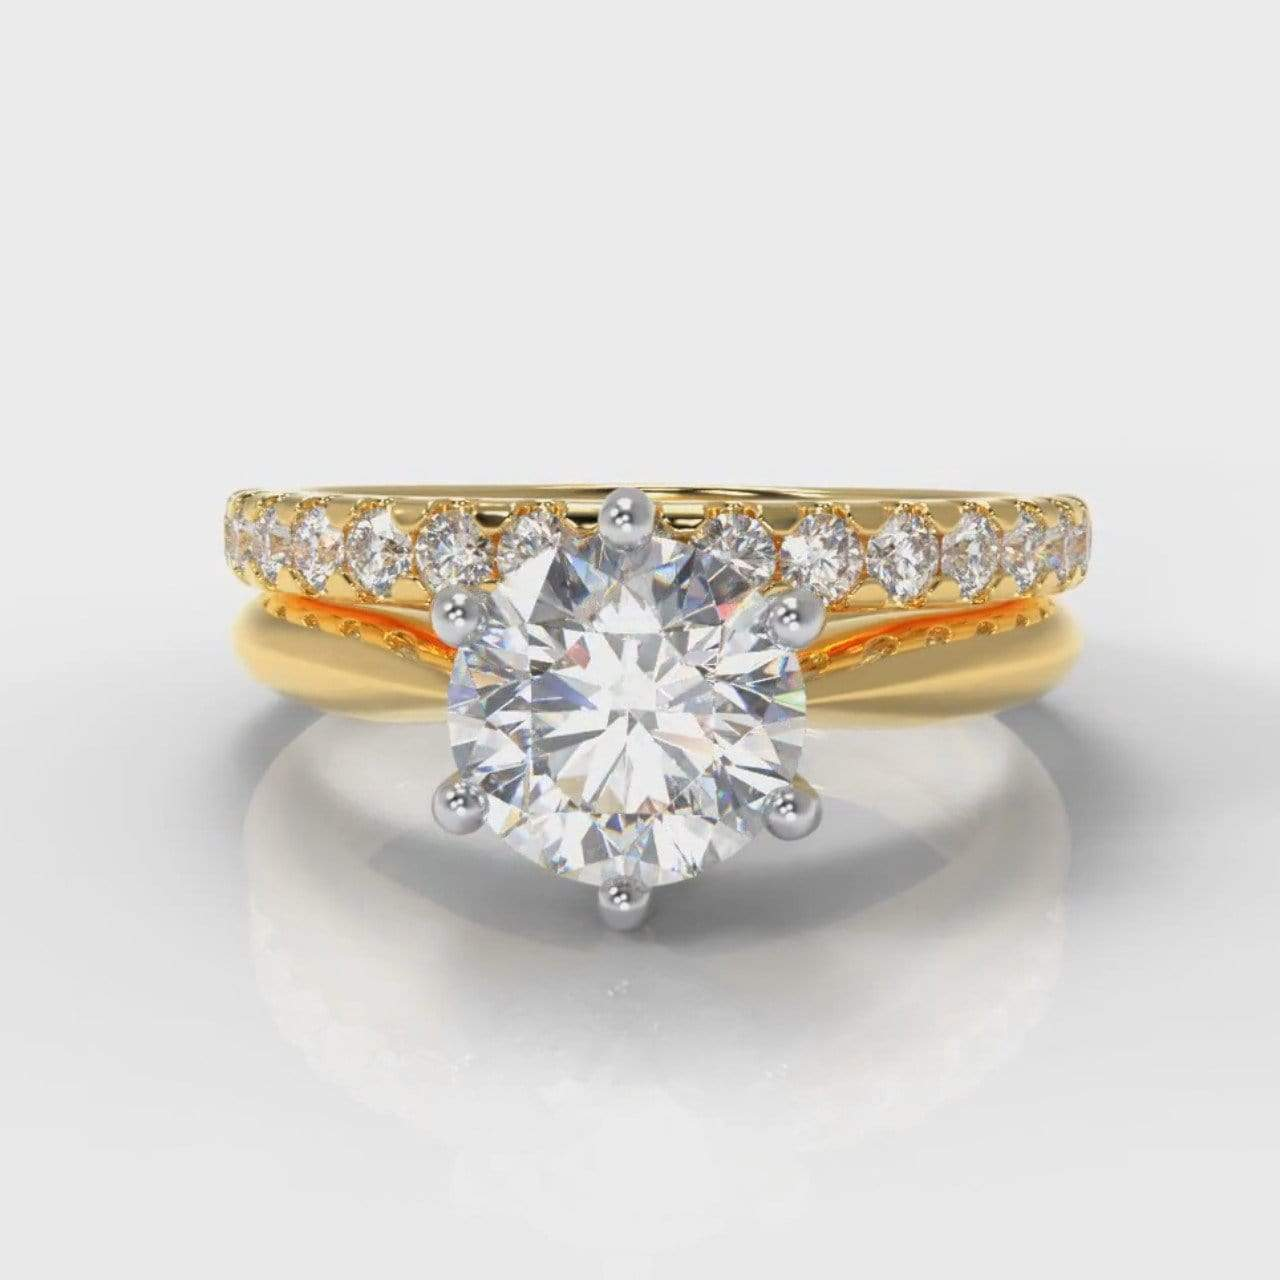 Six Claw Classic Solitaire Round Brilliant Cut Lab Diamond Bridal Ring Set - Yellow Gold